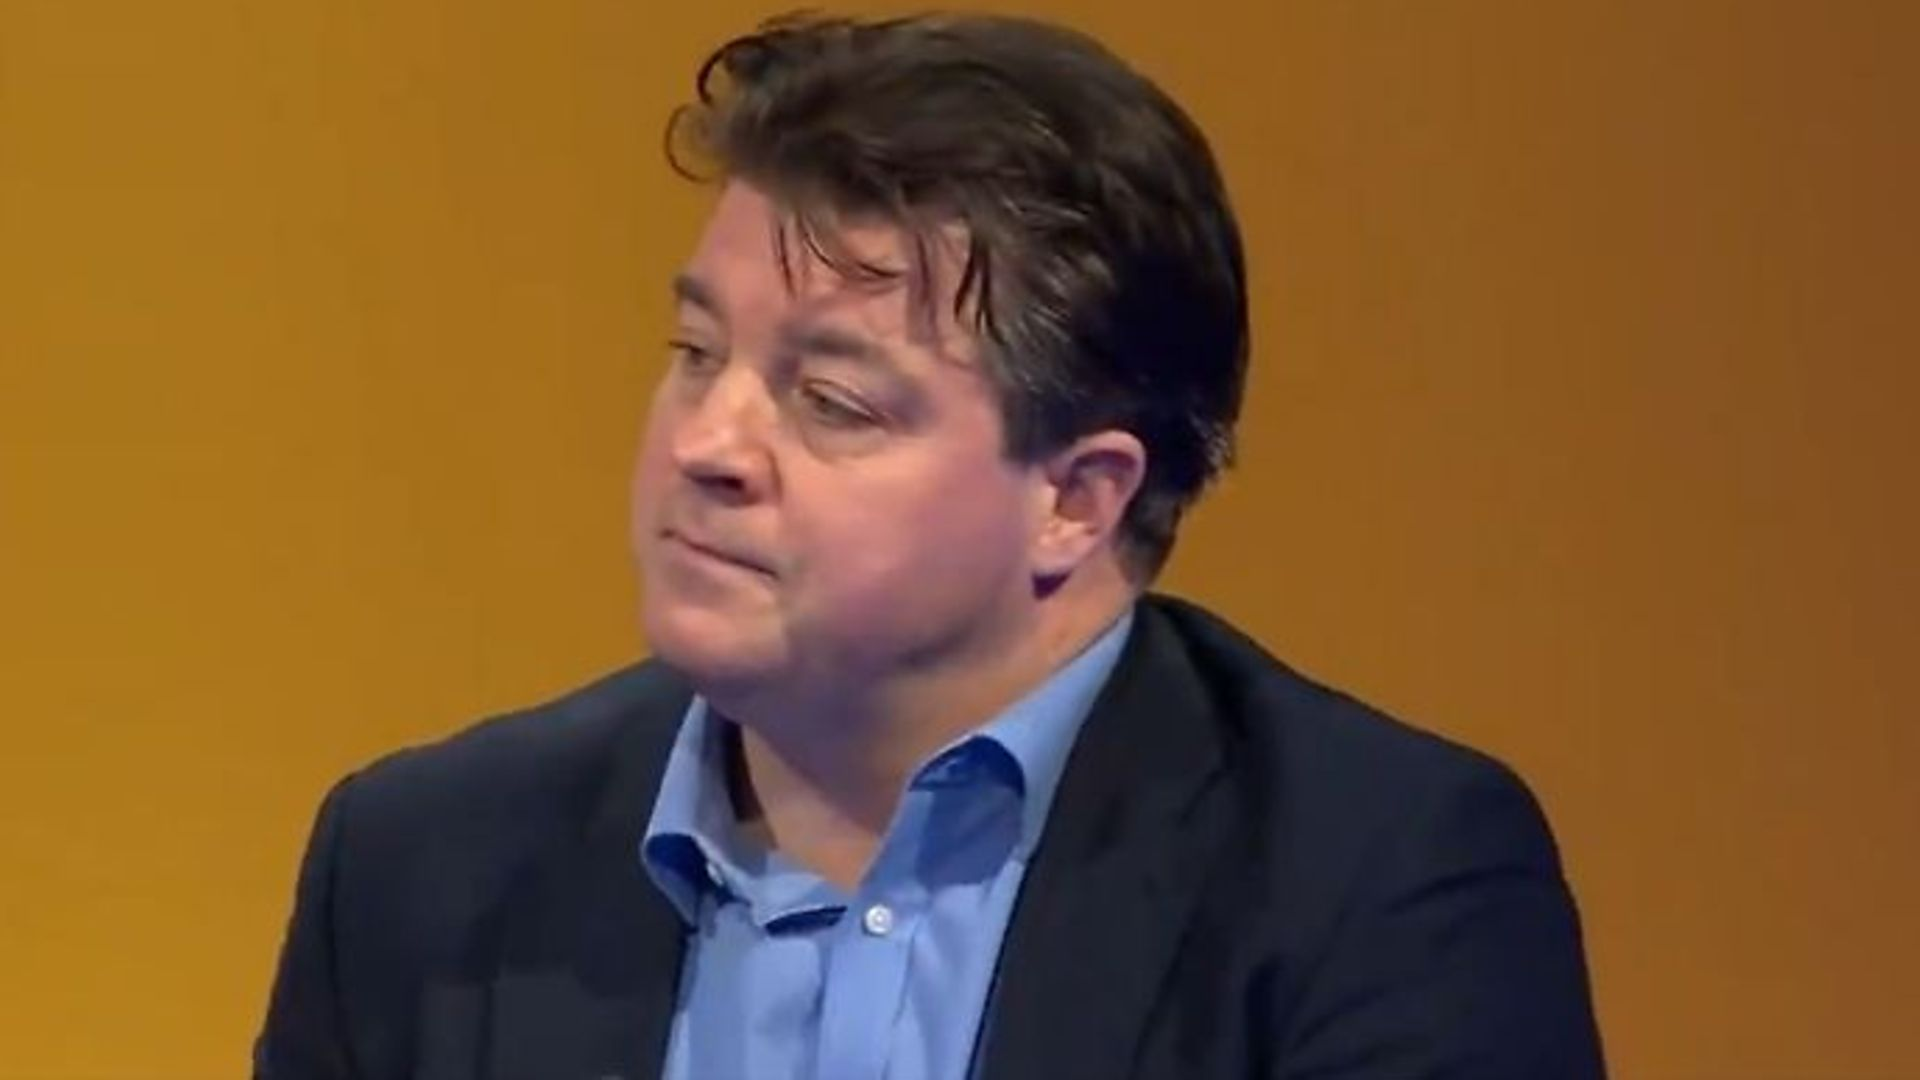 Liam Halligan on BBC 1's Question Time - Credit: Twitter